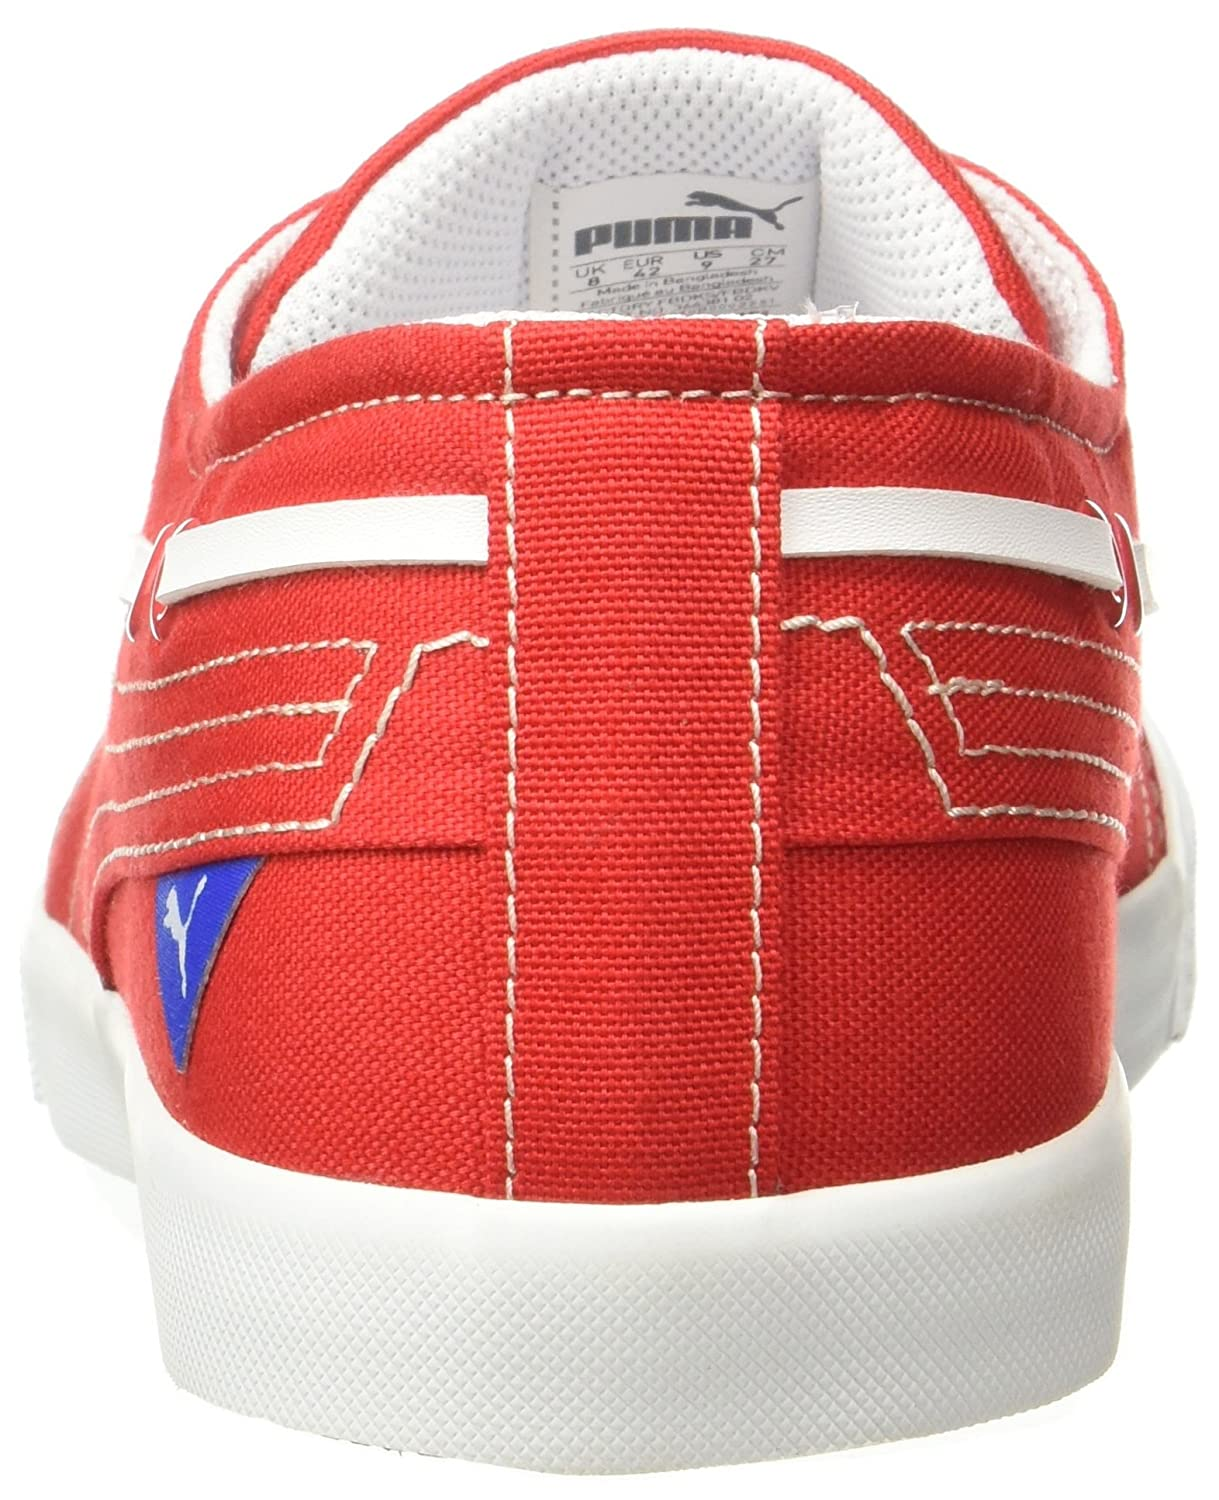 311c330b0fe8 Puma Men s Ferry IDP Boat Shoes  Buy Online at Low Prices in India -  Amazon.in